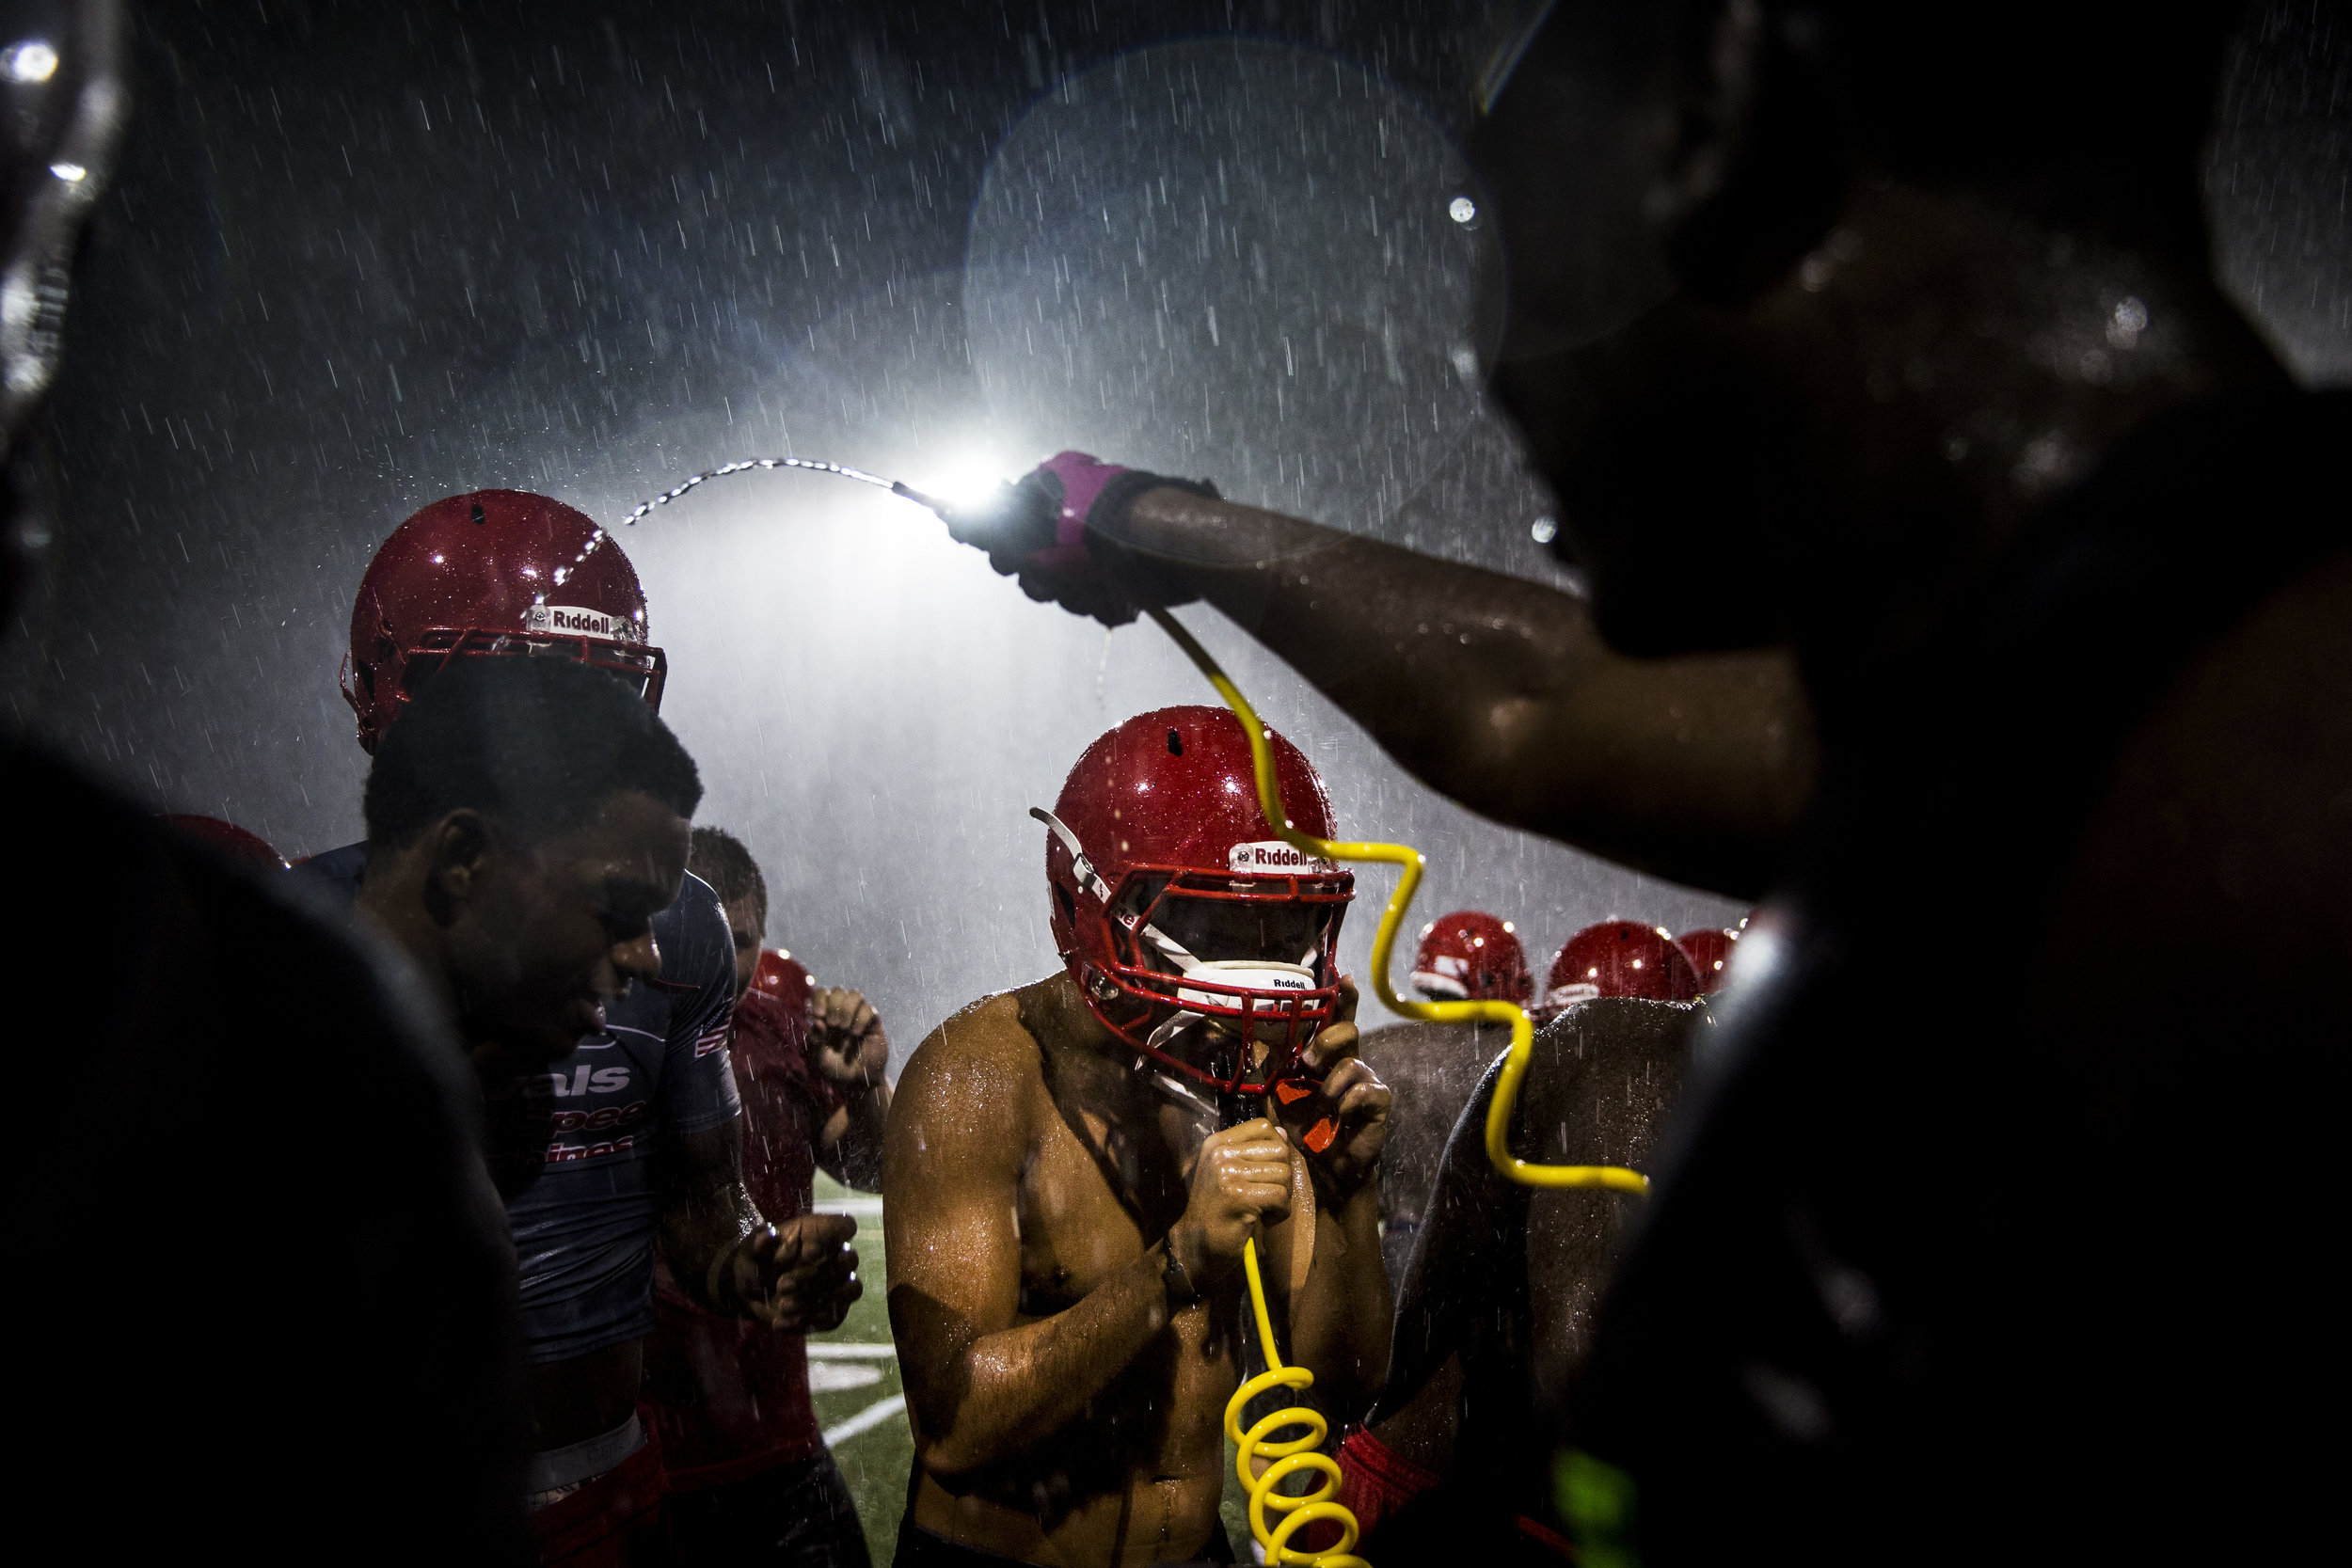 Immokalee varsity football players grab a drink during the first practice of the season at Immokalee High School on Monday, July 31, 2017.